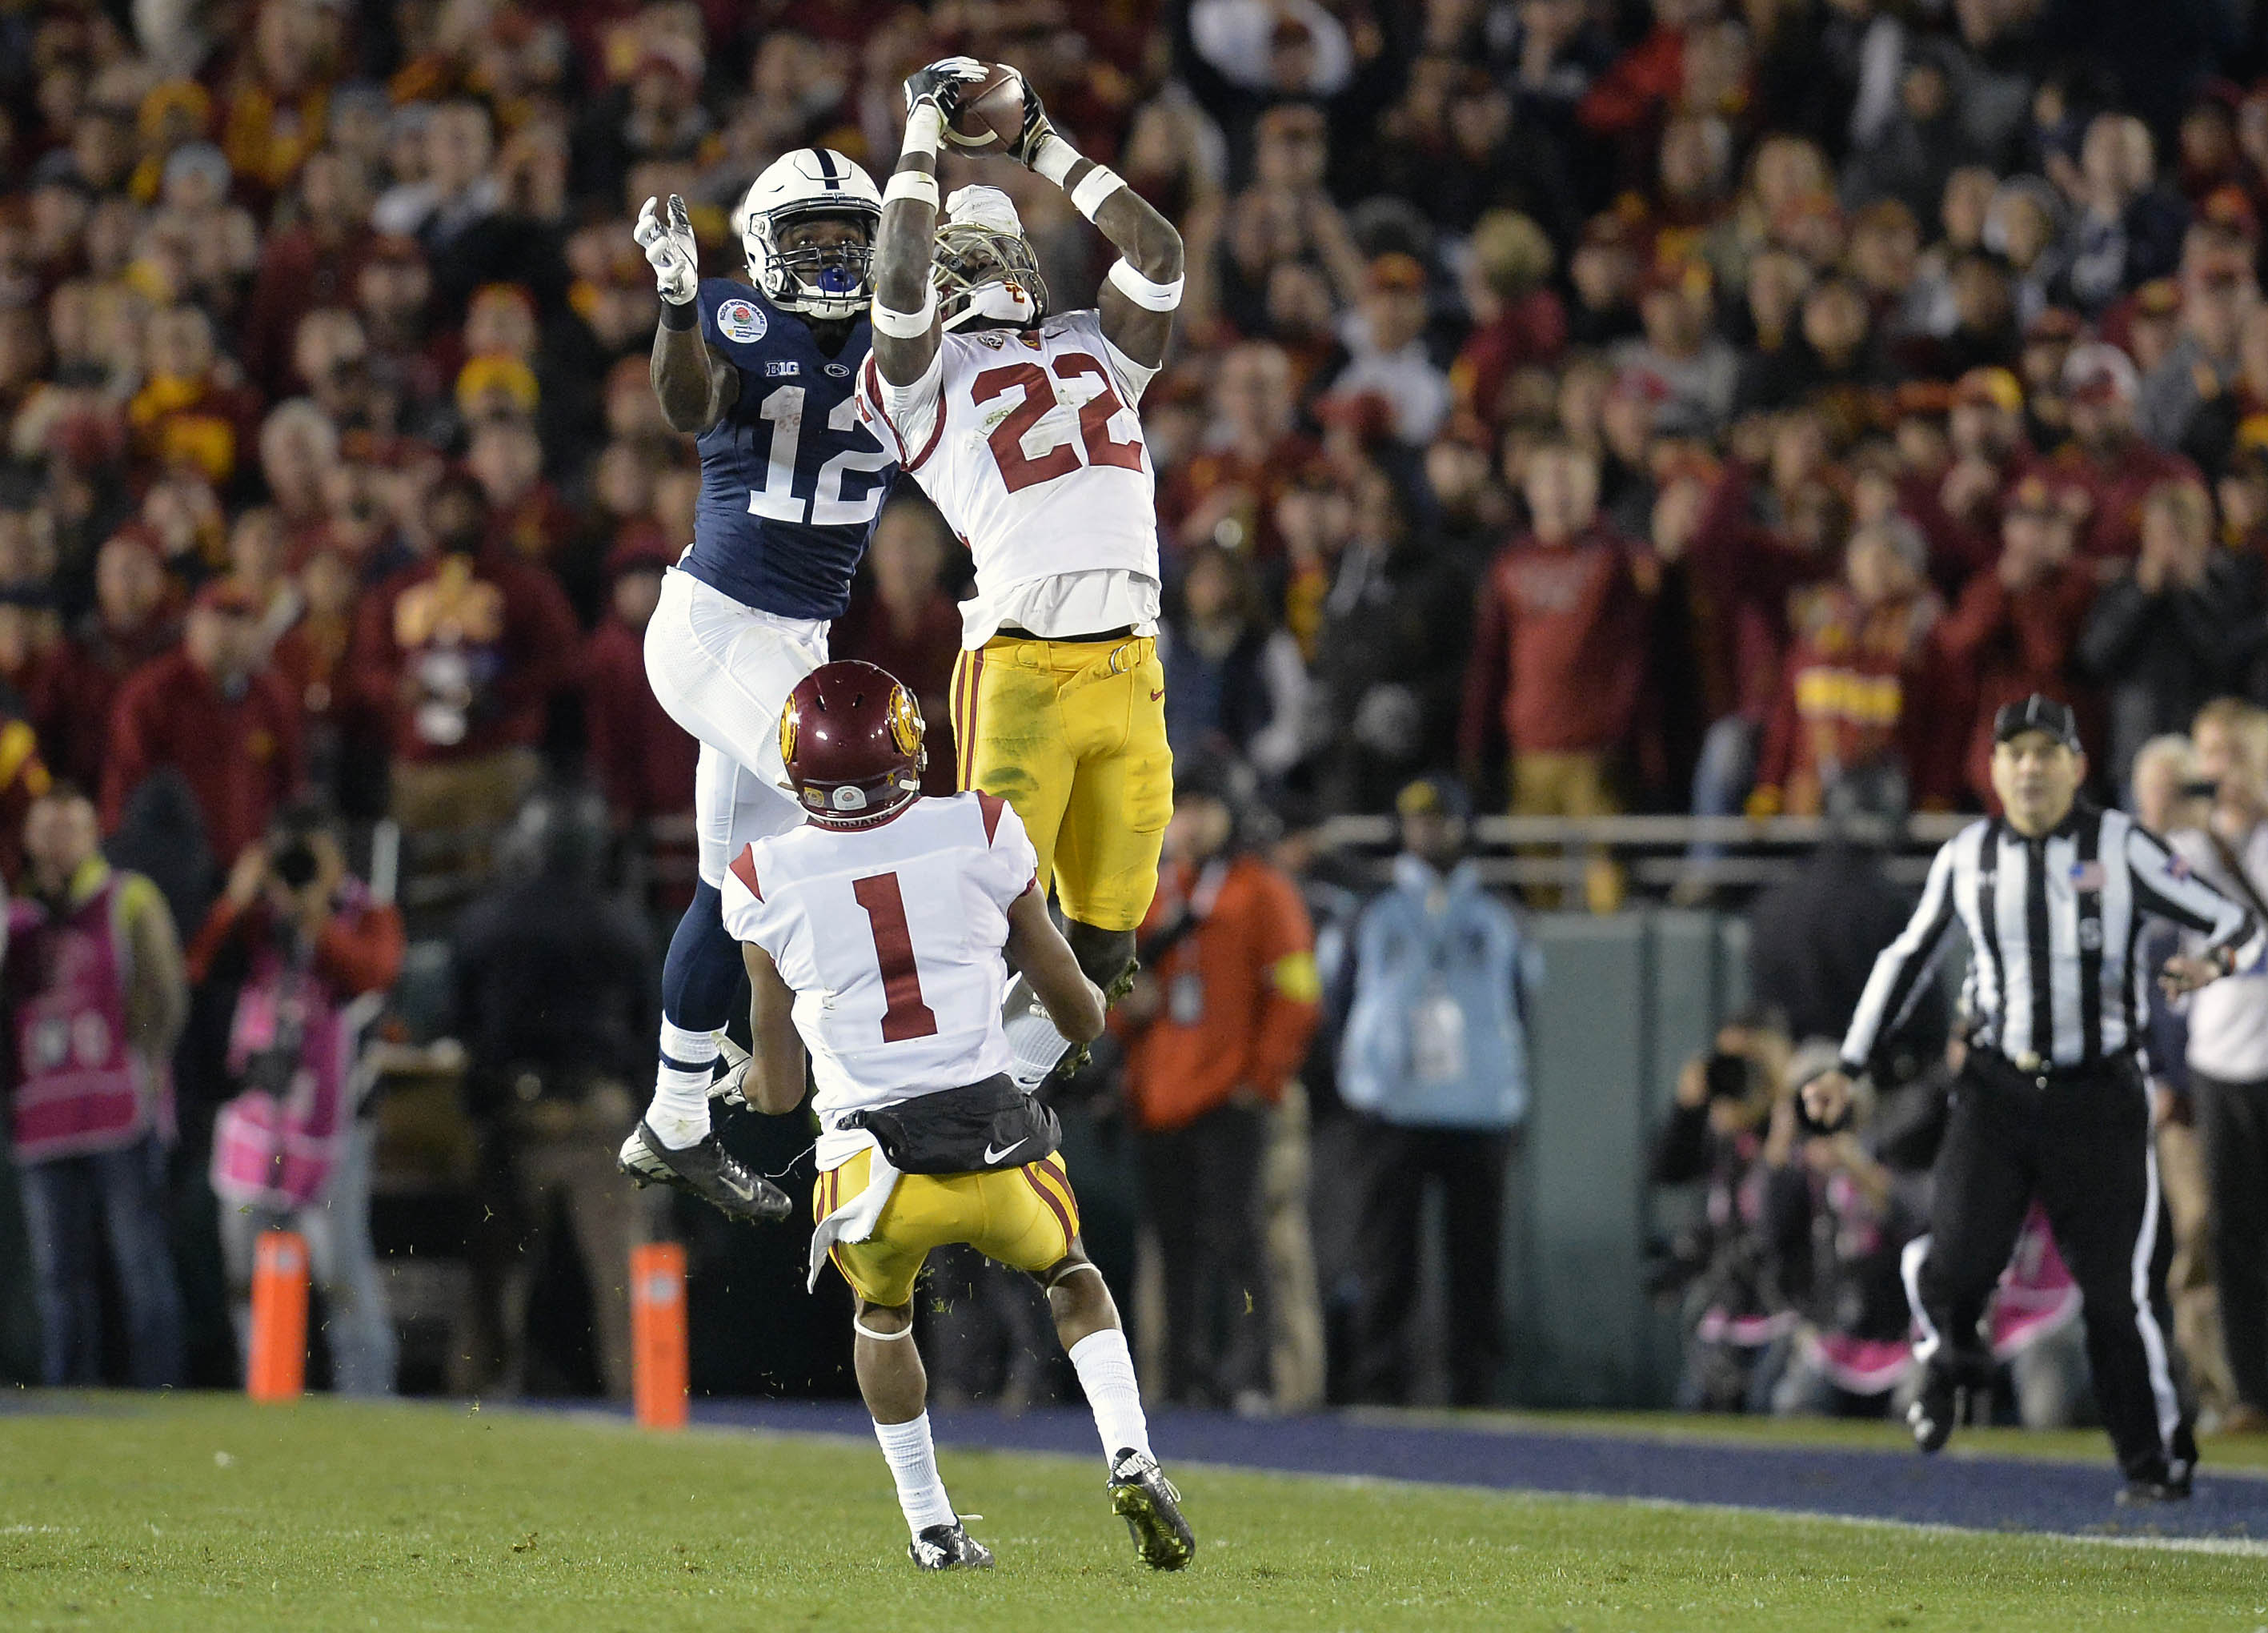 January 2, 2017; Pasadena, CA, USA; Southern California Trojans defensive back Leon McQuay III (22) intercepts a pass intended for Penn State Nittany Lions wide receiver Chris Godwin (12) during the second half of the 2017 Rose Bowl game at the Rose Bowl. Mandatory Credit: Gary A. Vasquez-USA TODAY Sports